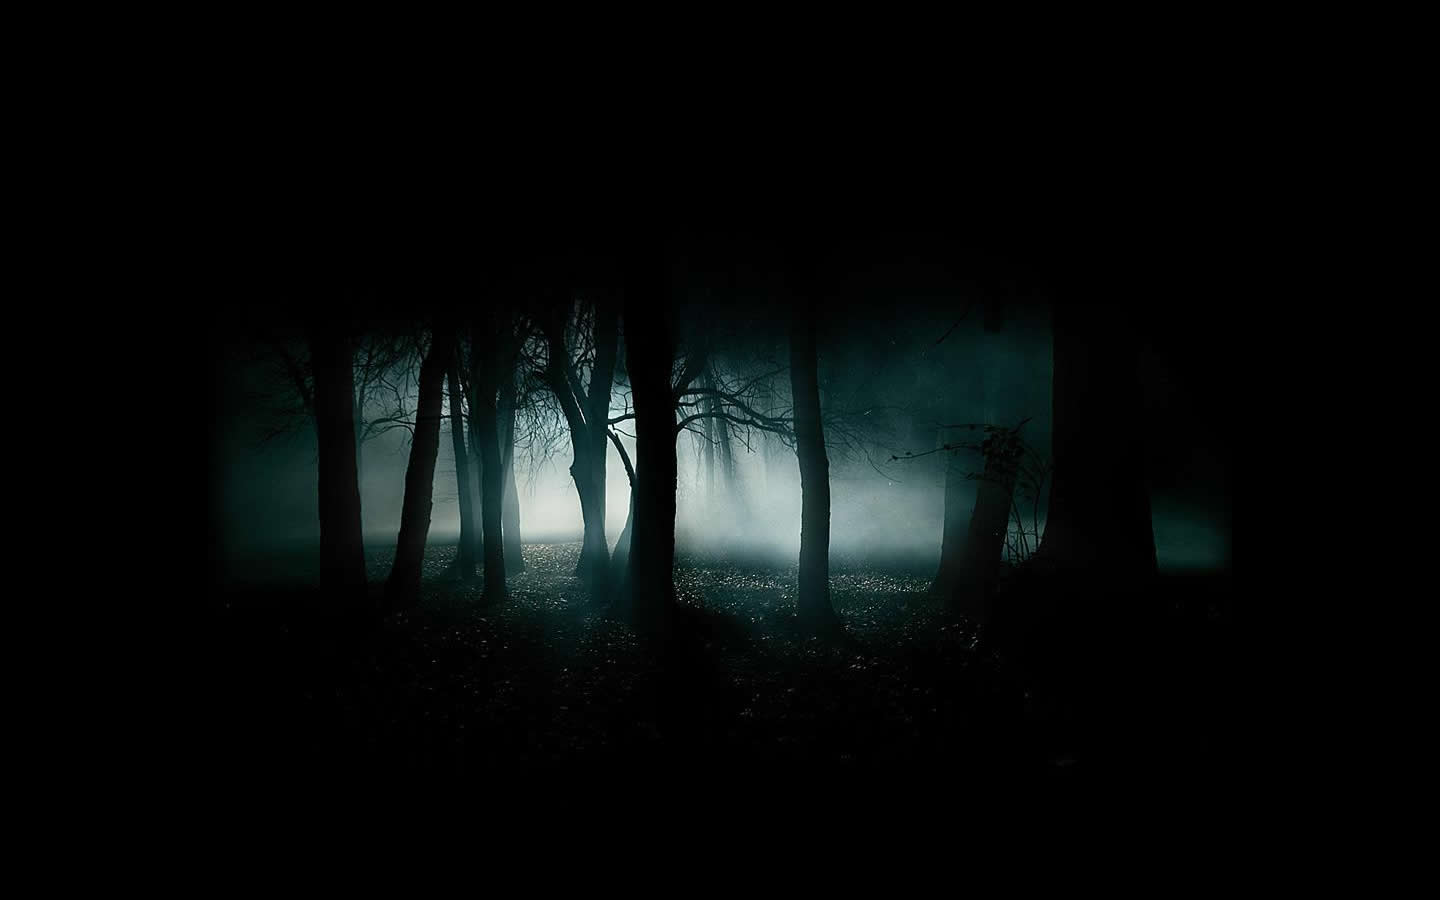 Collection of Best Dark Wallpapers on HDWallpapers